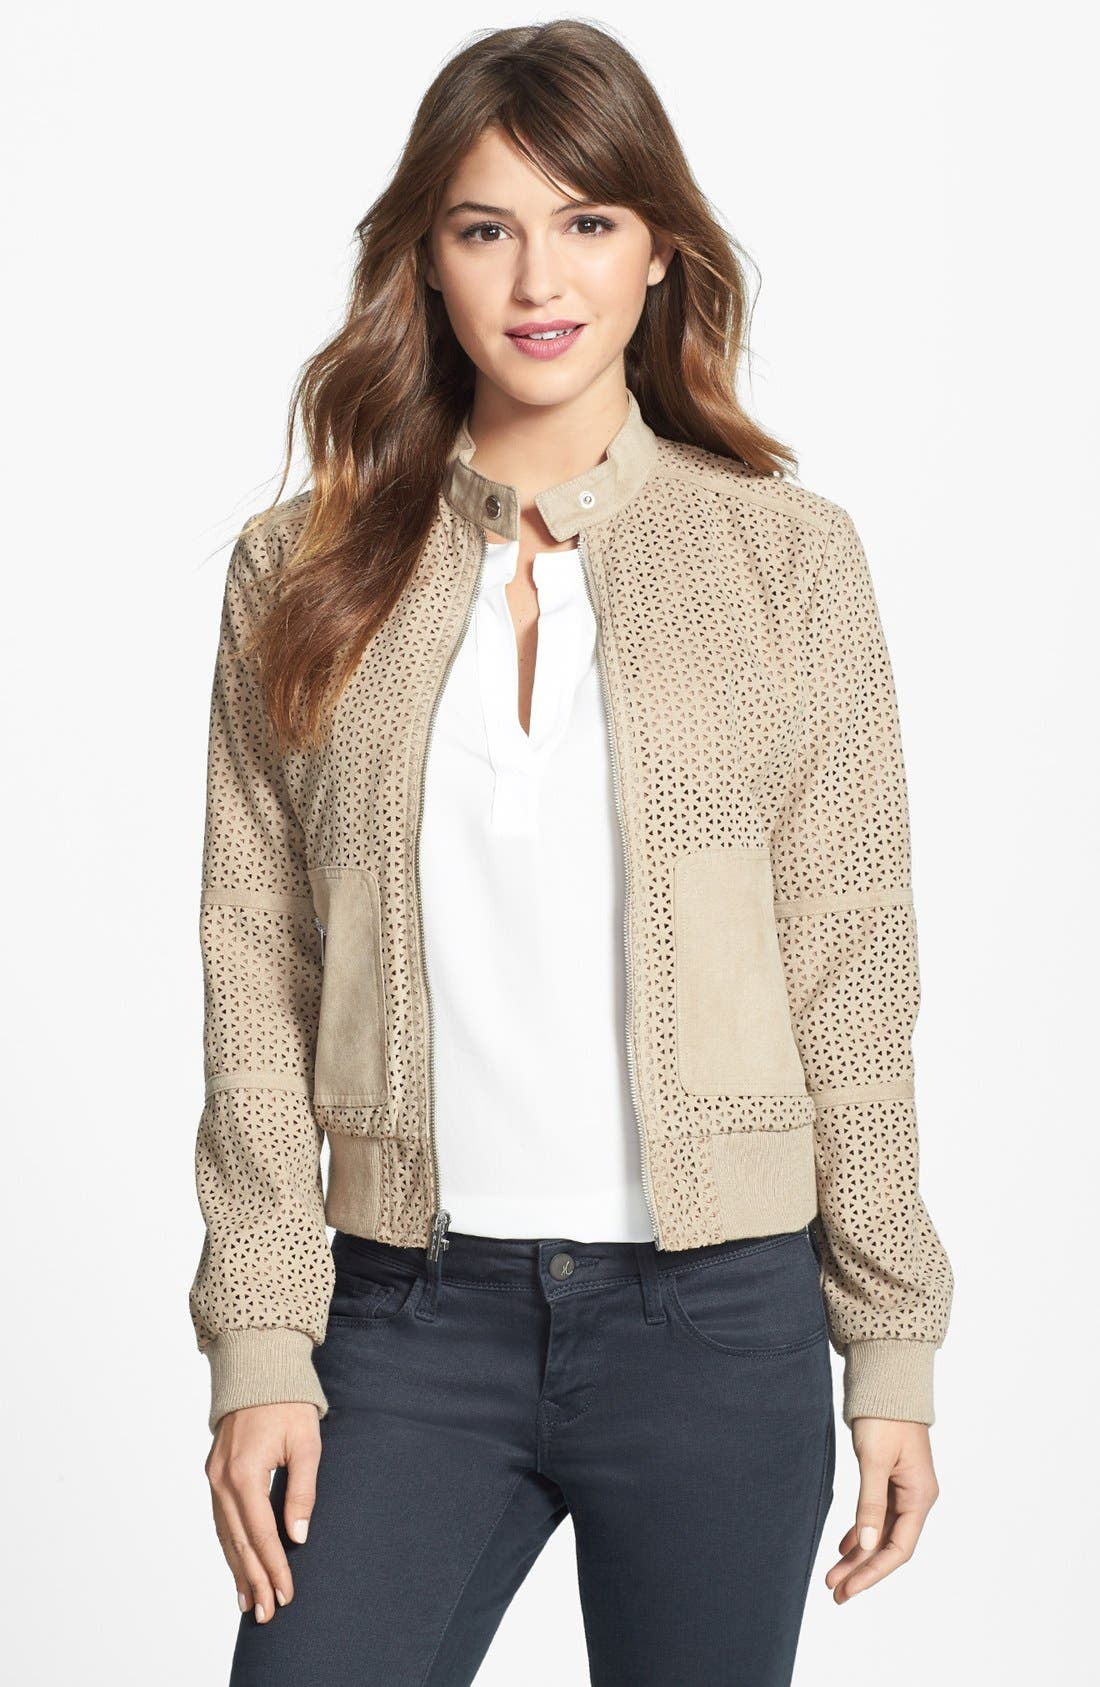 Alternate Image 1 Selected - Kenneth Cole New York Perforated Faux Suede Bomber Jacket (Regular & Petite)